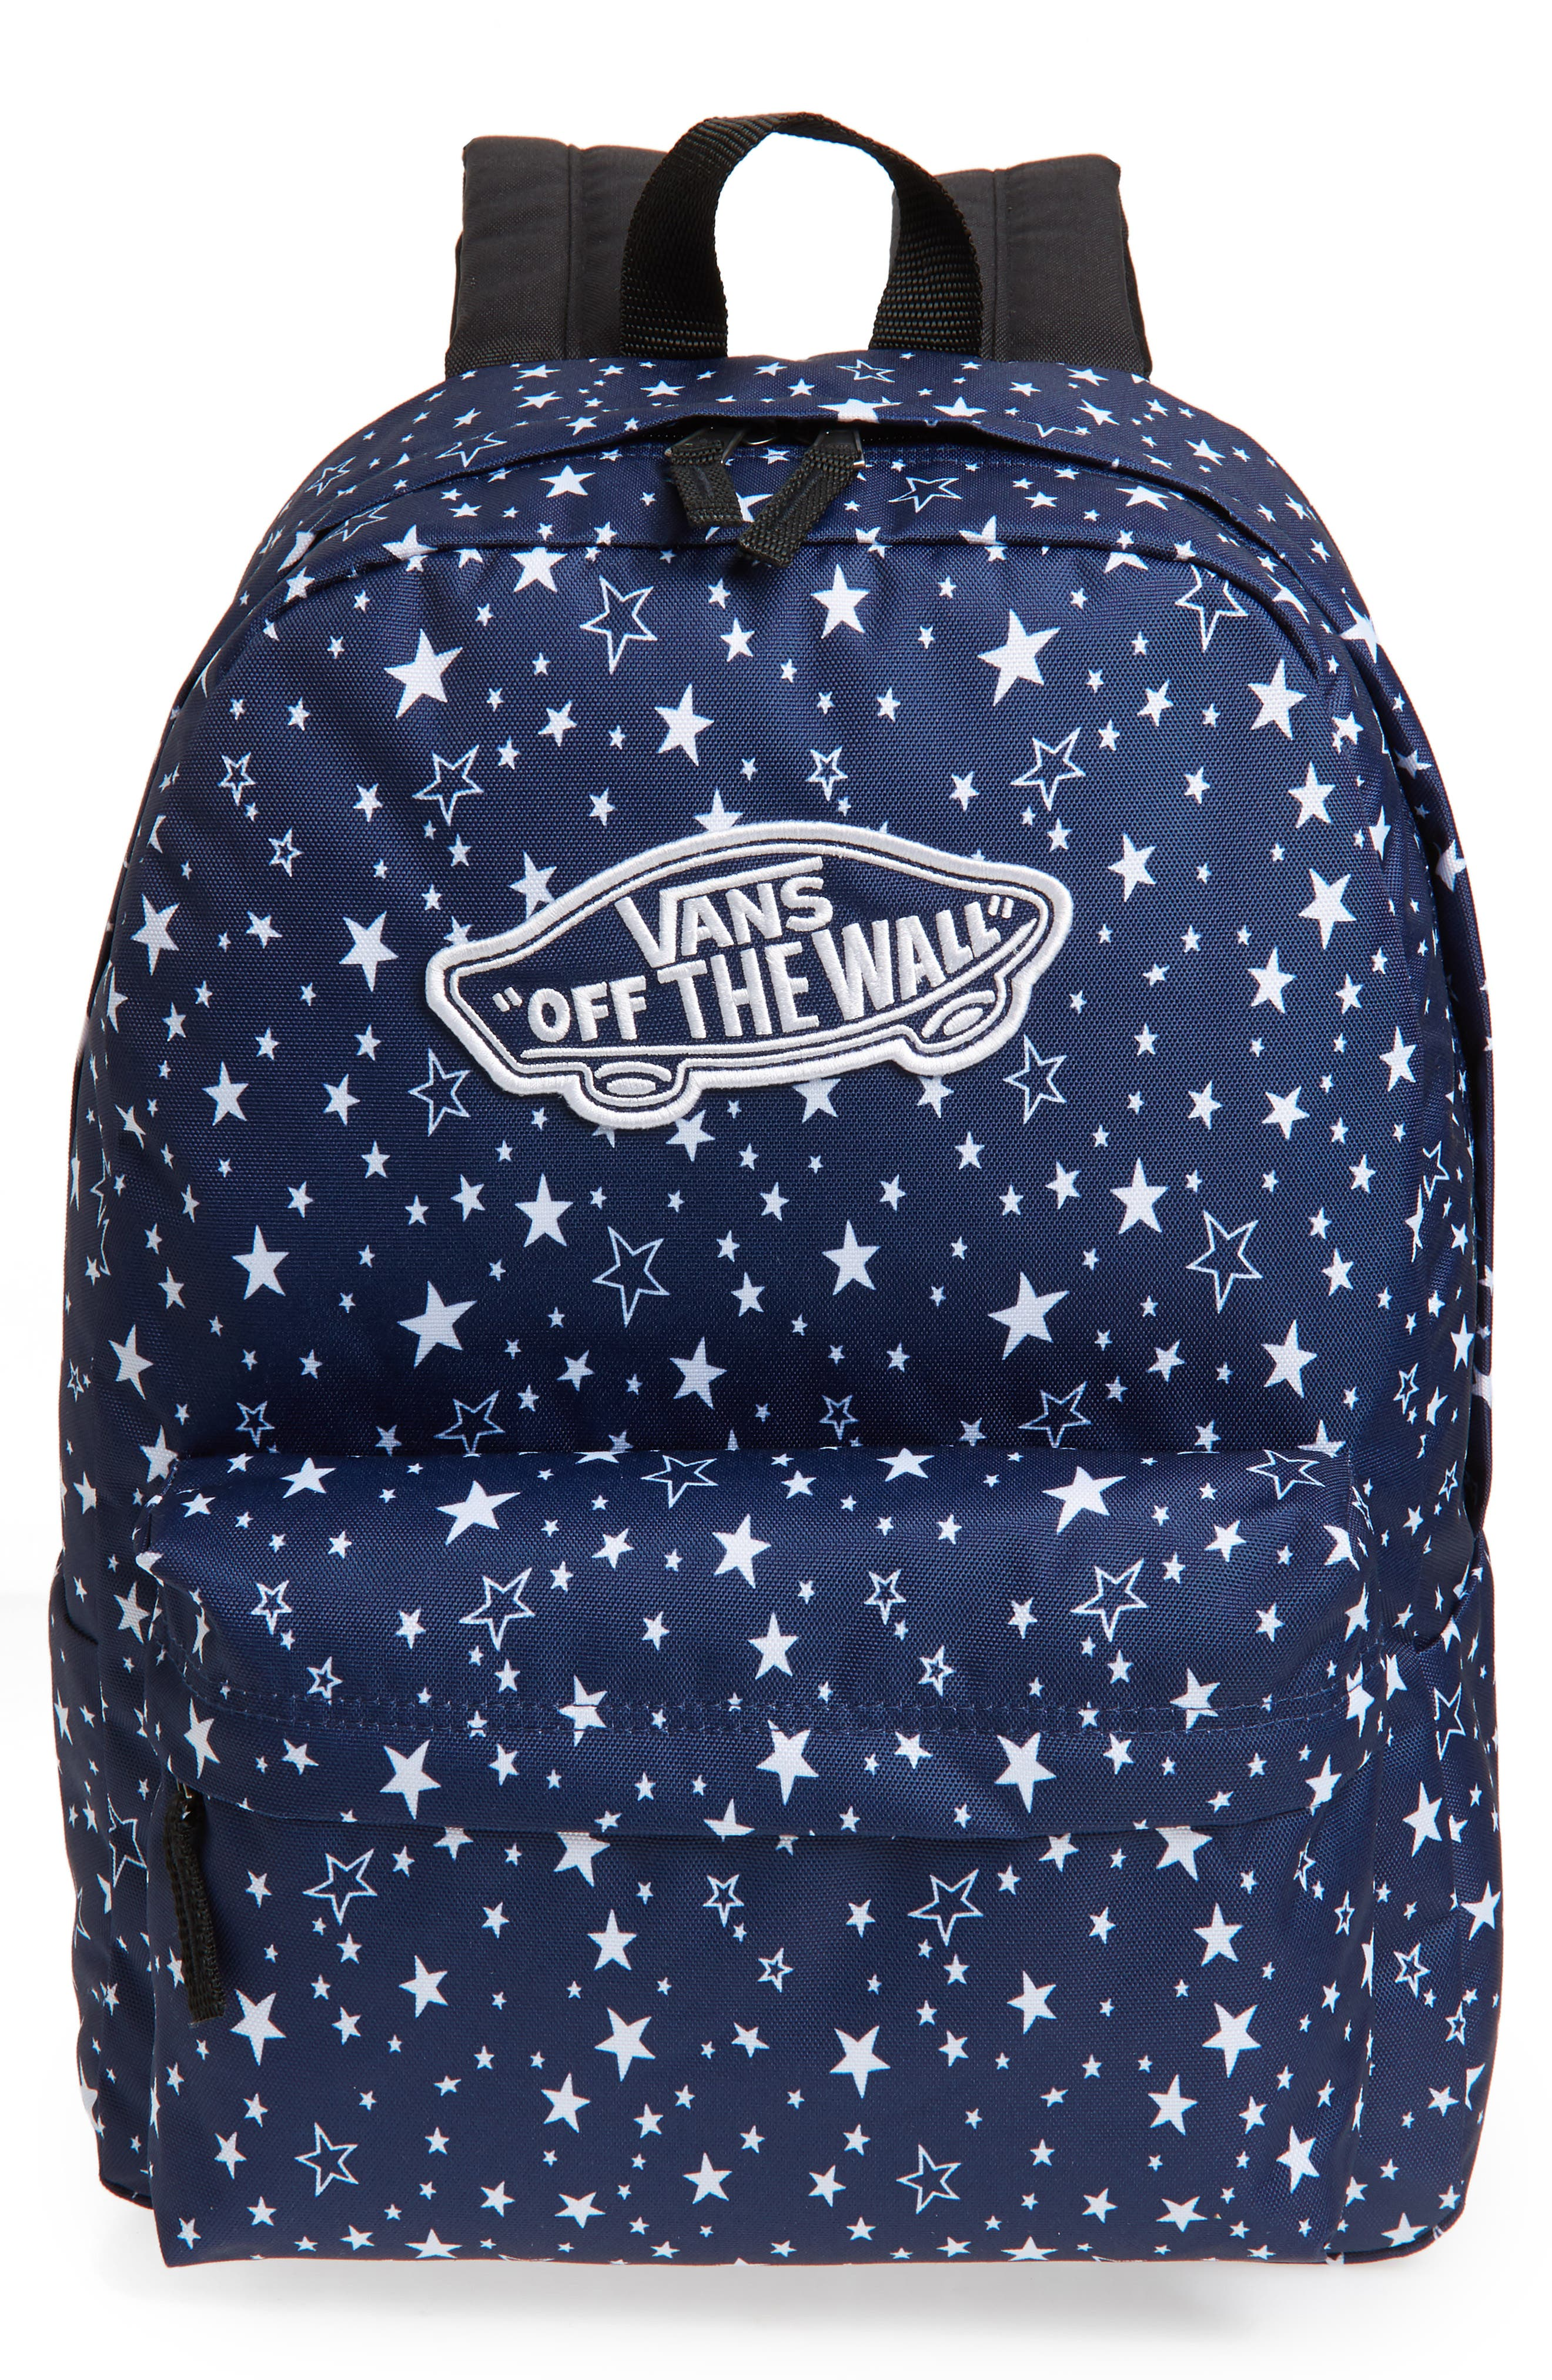 Realm Backpack,                         Main,                         color, MEDIEVAL BLUE STAR